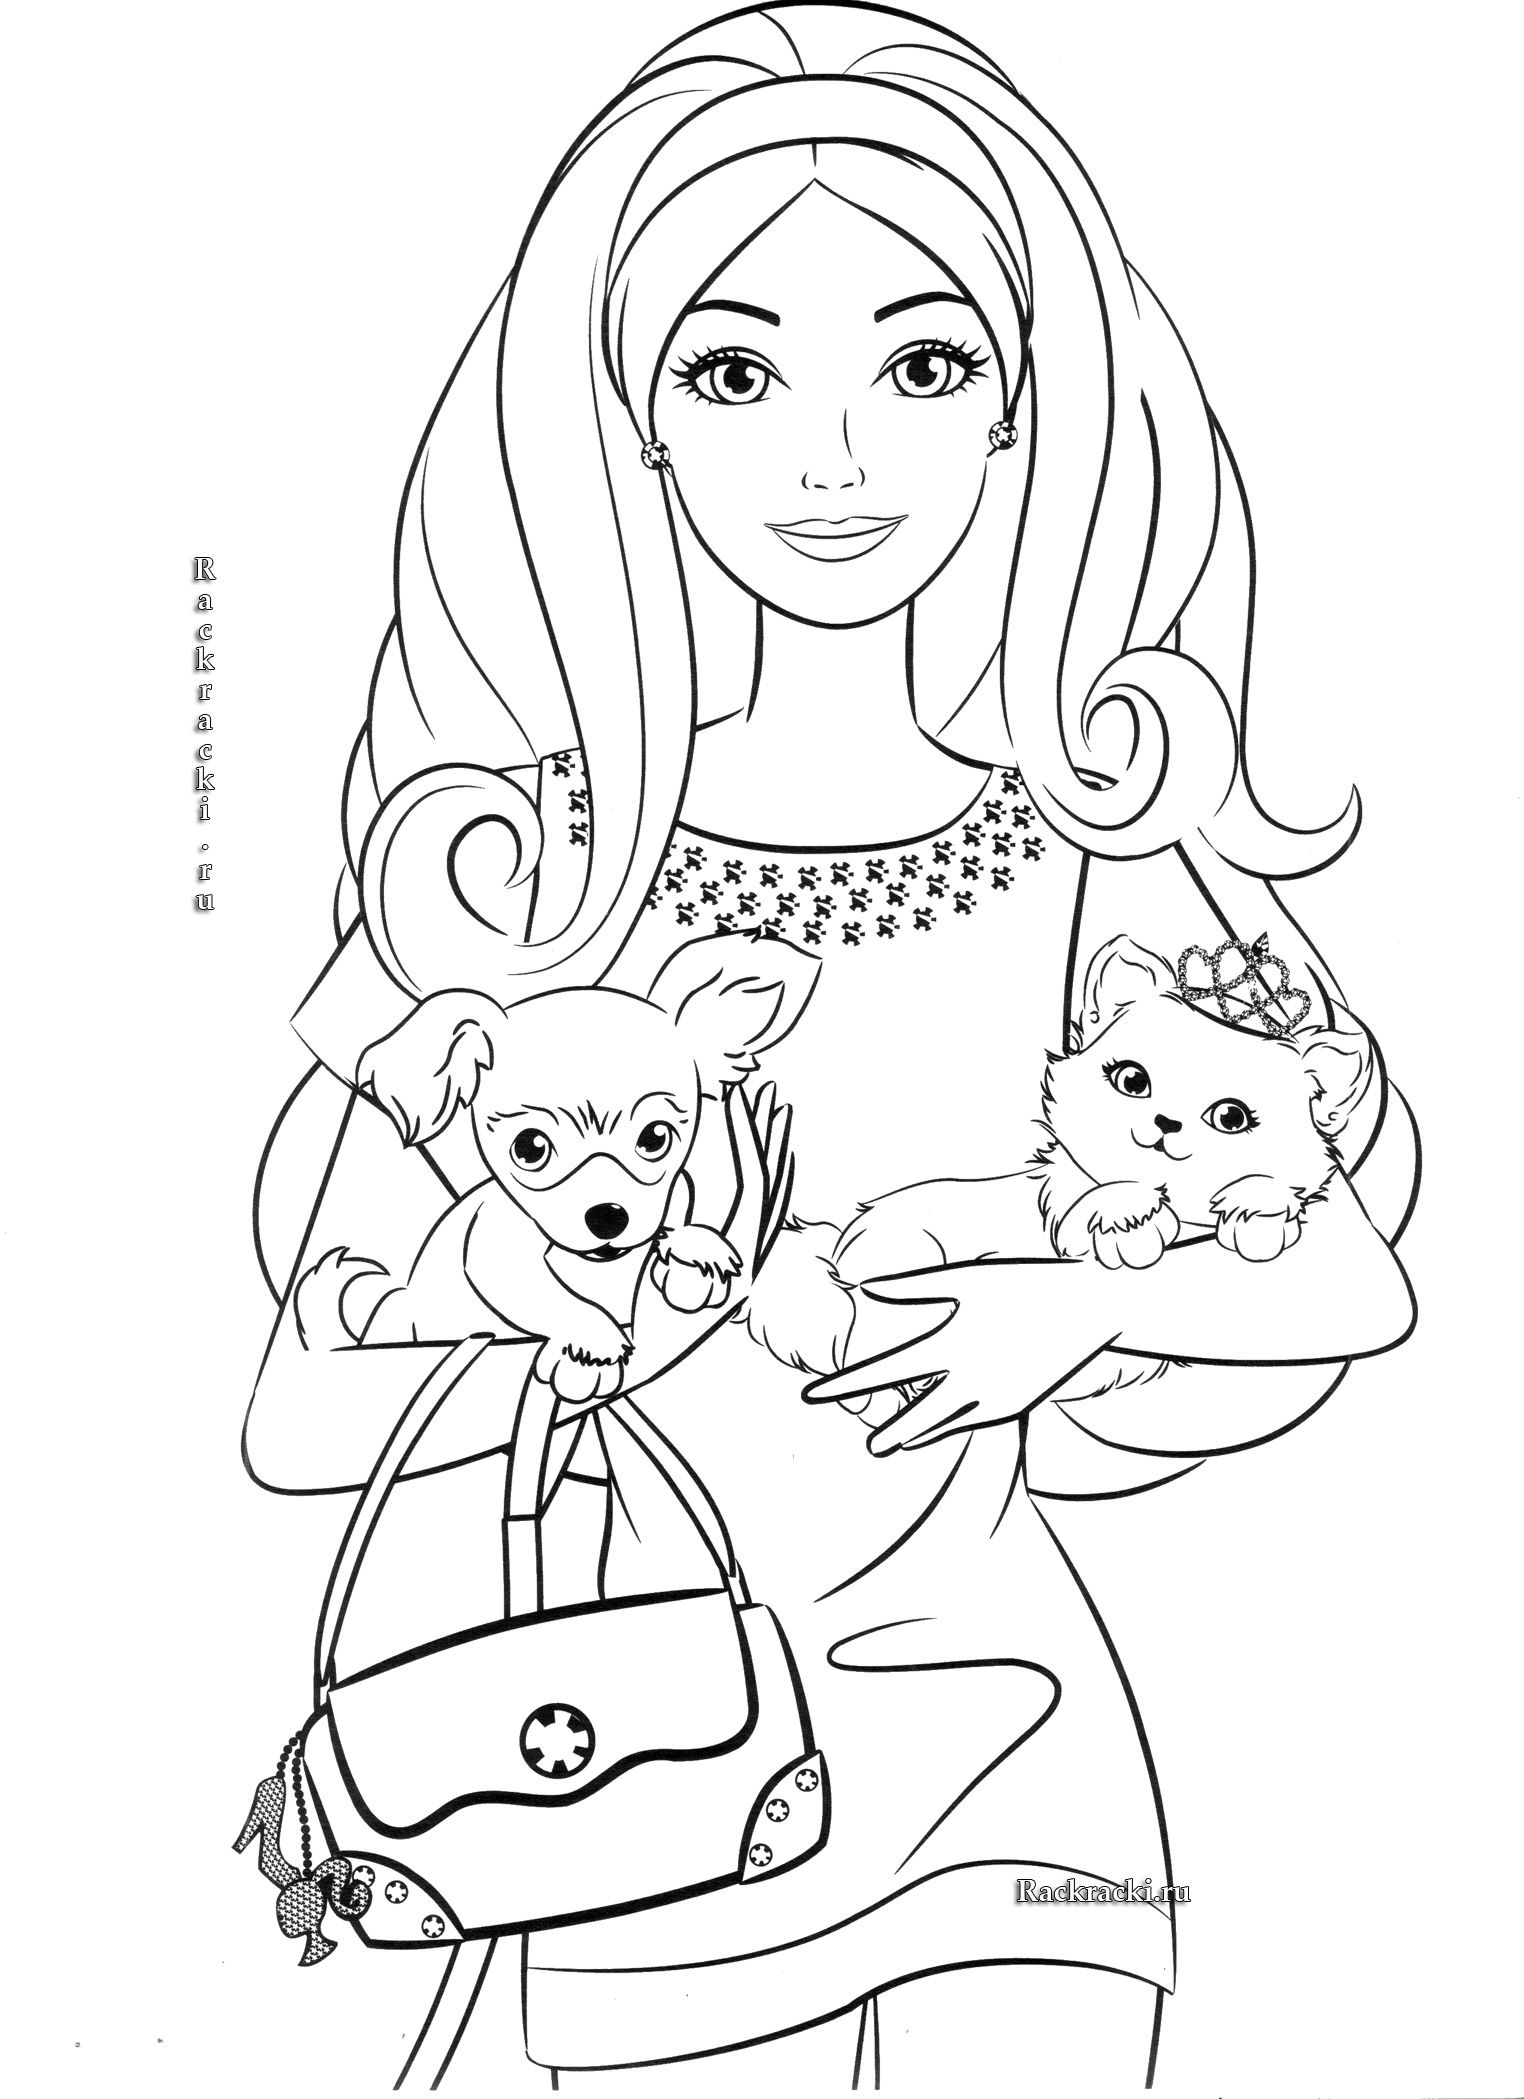 Unique Dessin à Colorier Barbie Pop Star